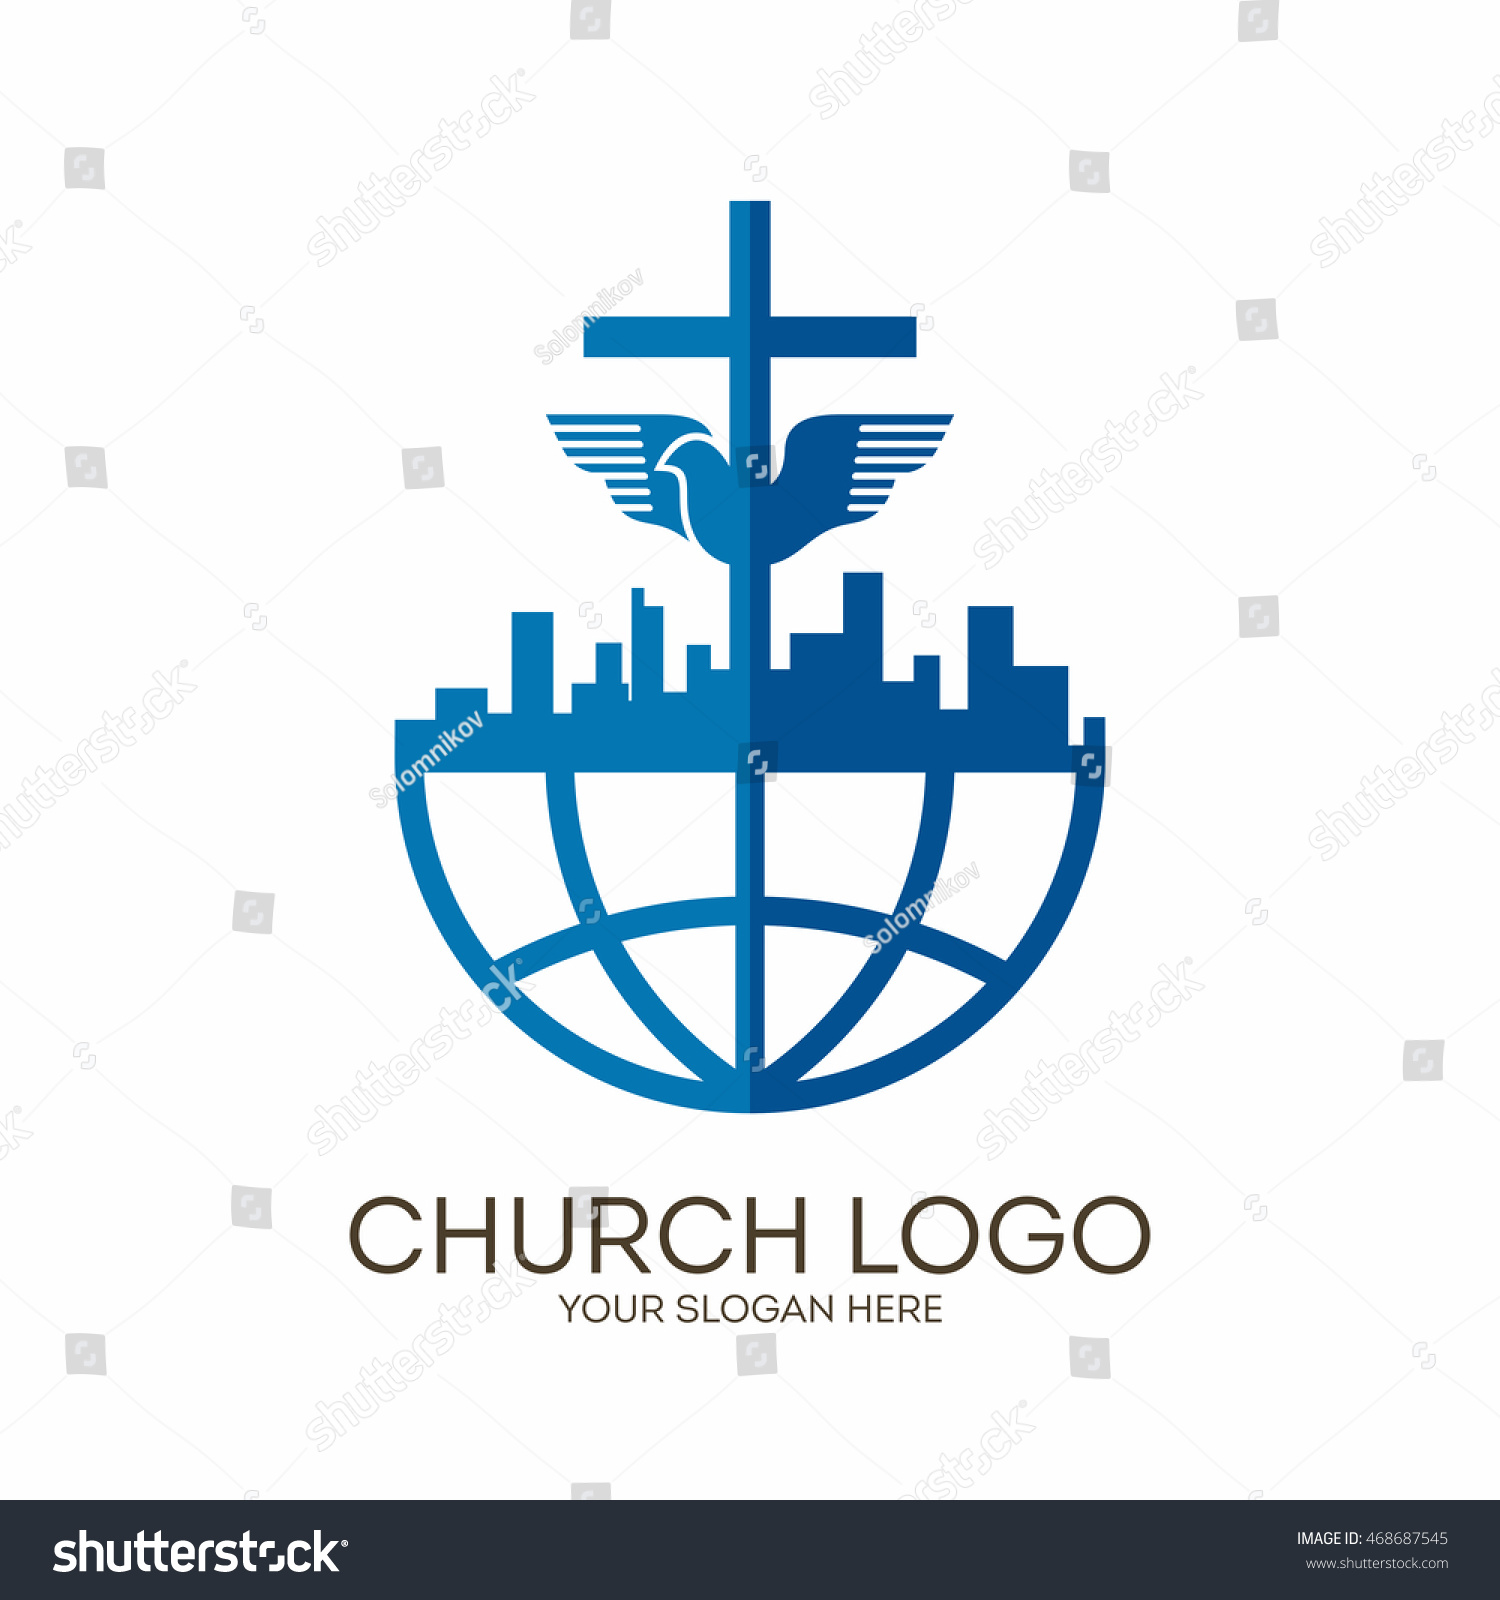 Church logo christian symbols city globe stock vector 468687545 church logo christian symbols city globe jesus cross and dove biocorpaavc